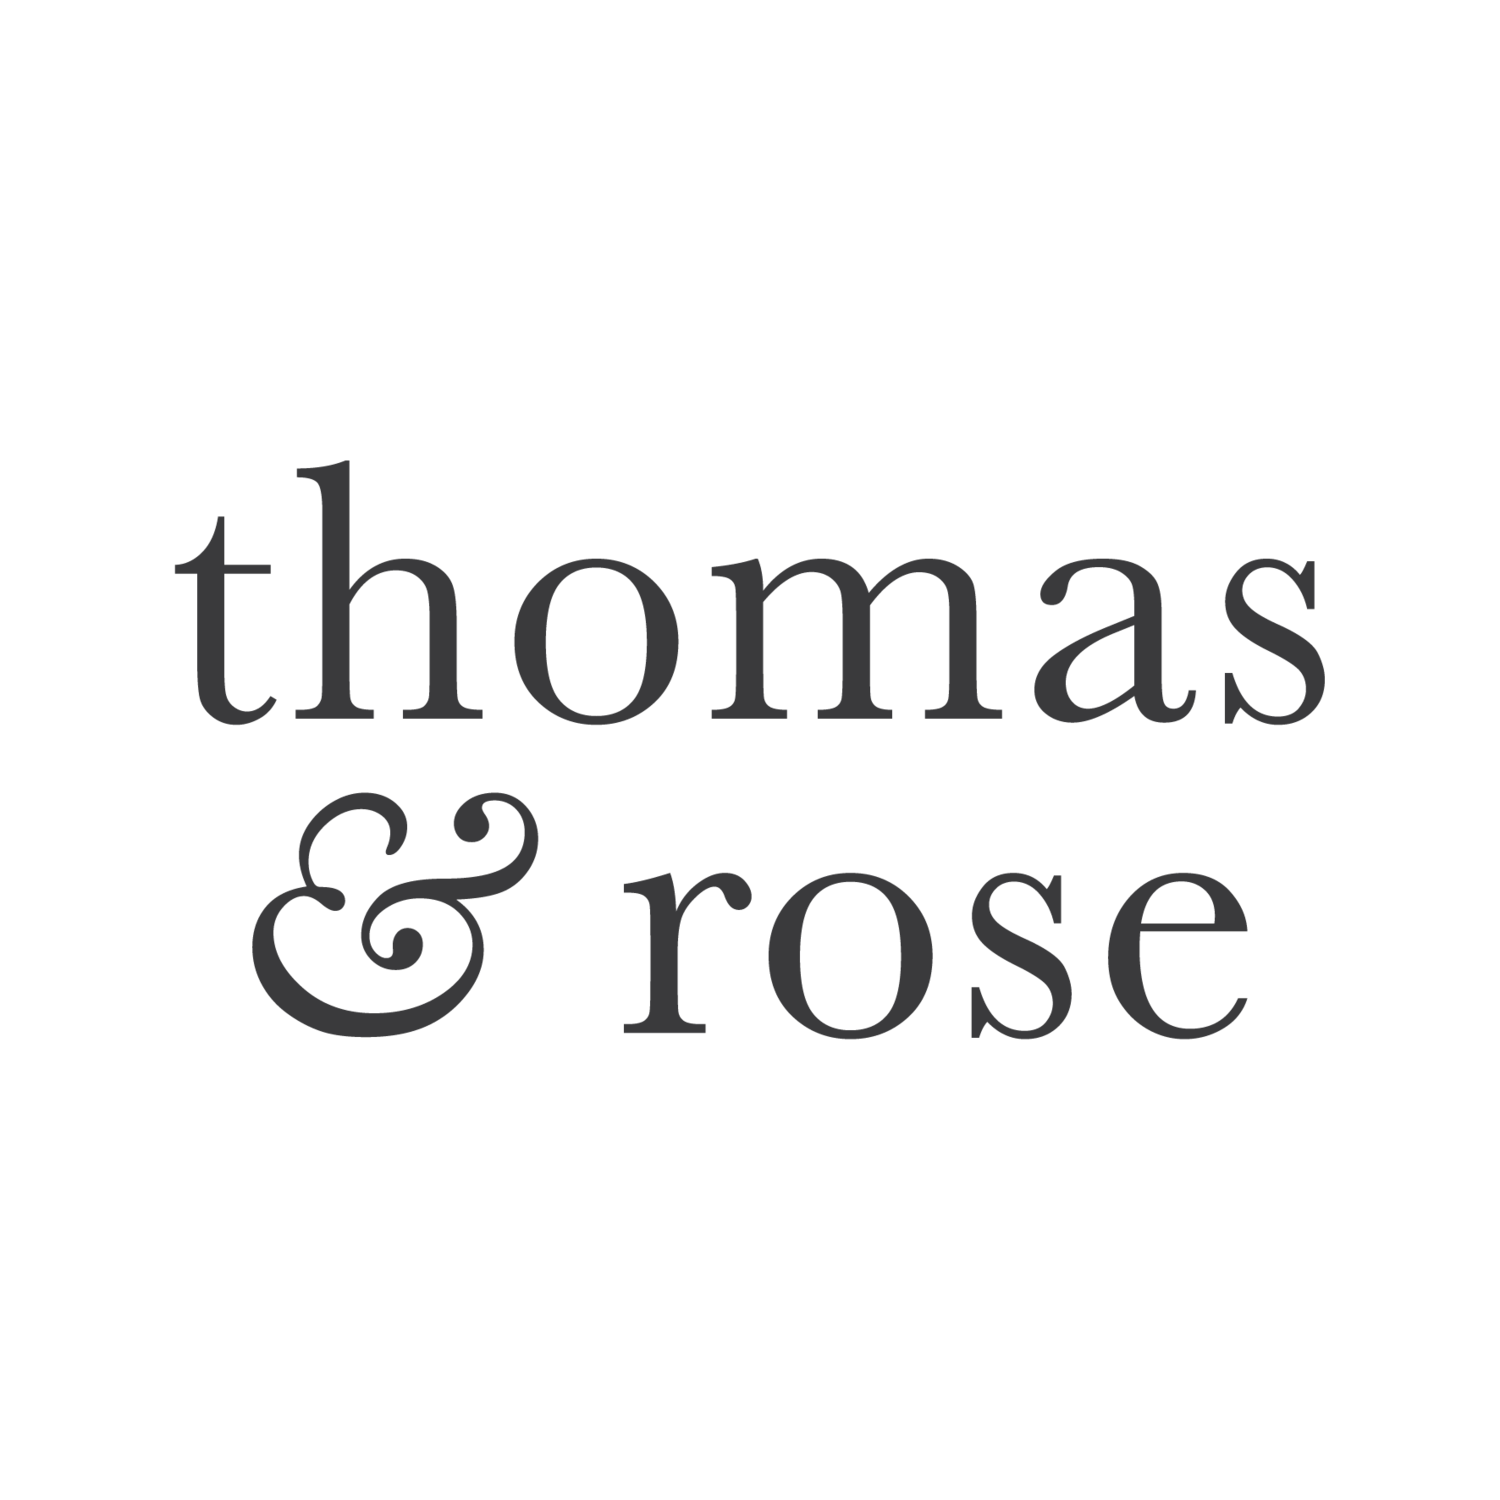 Thomas and Rose